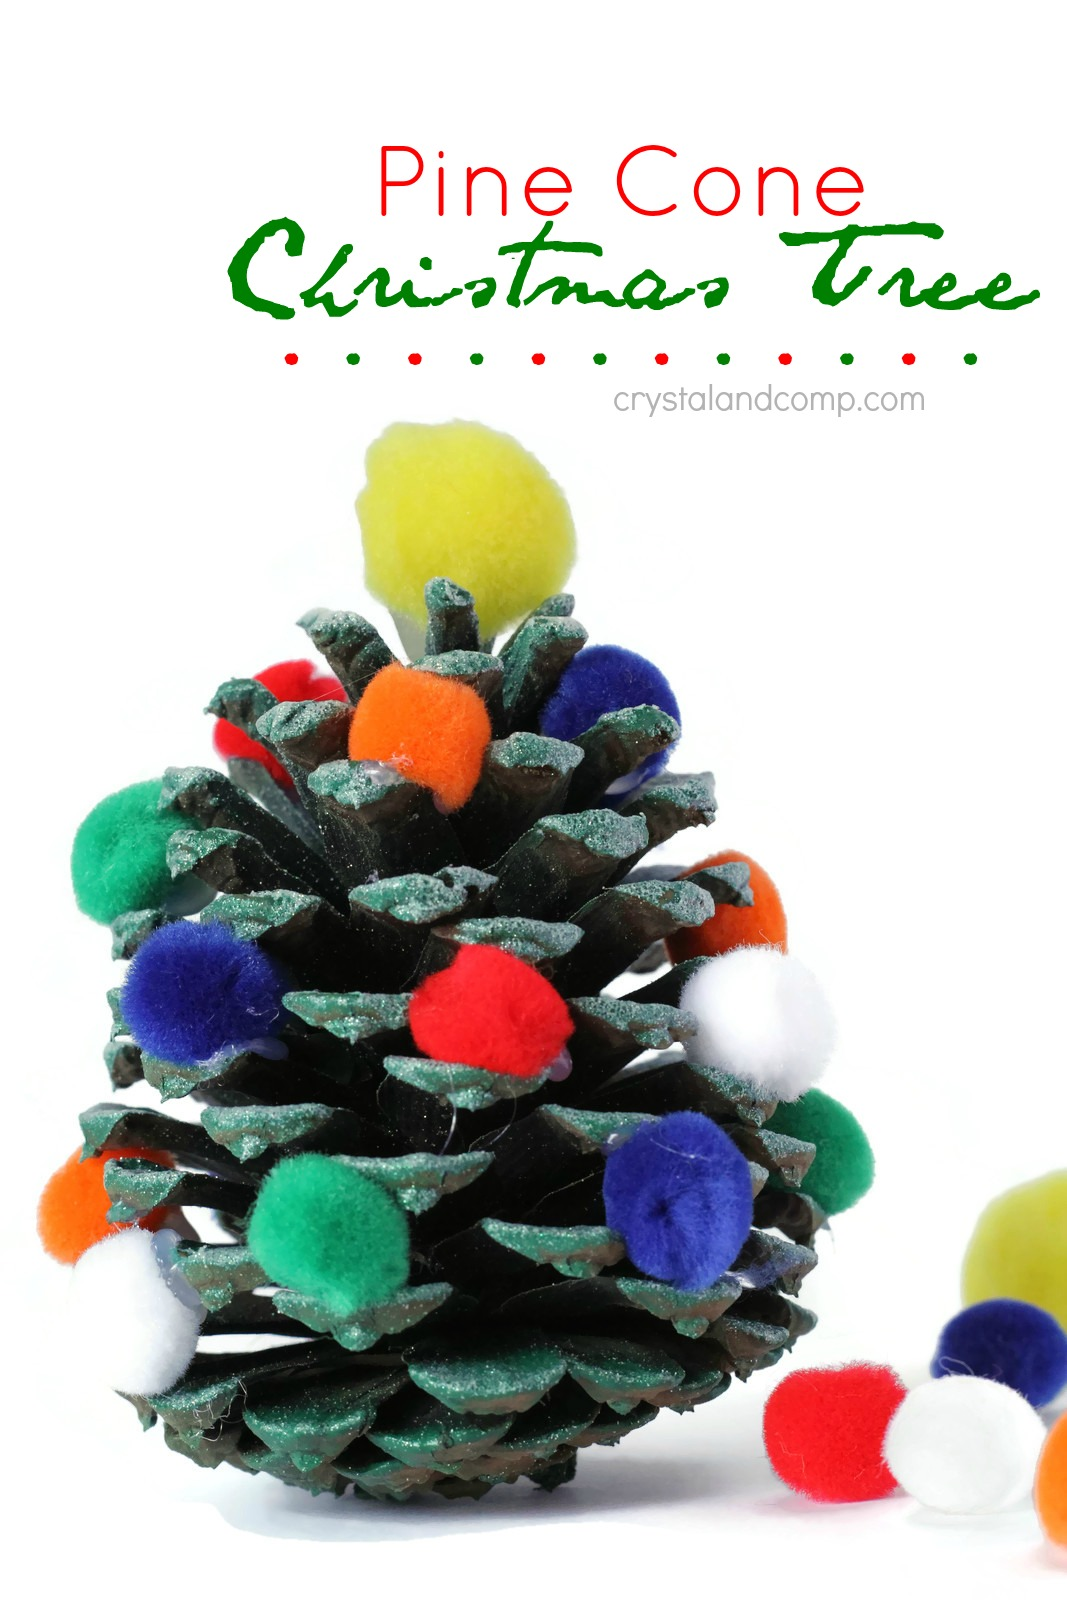 activities for kids how to make a pine cone christmas tree - Pine Cone Christmas Tree Decorations